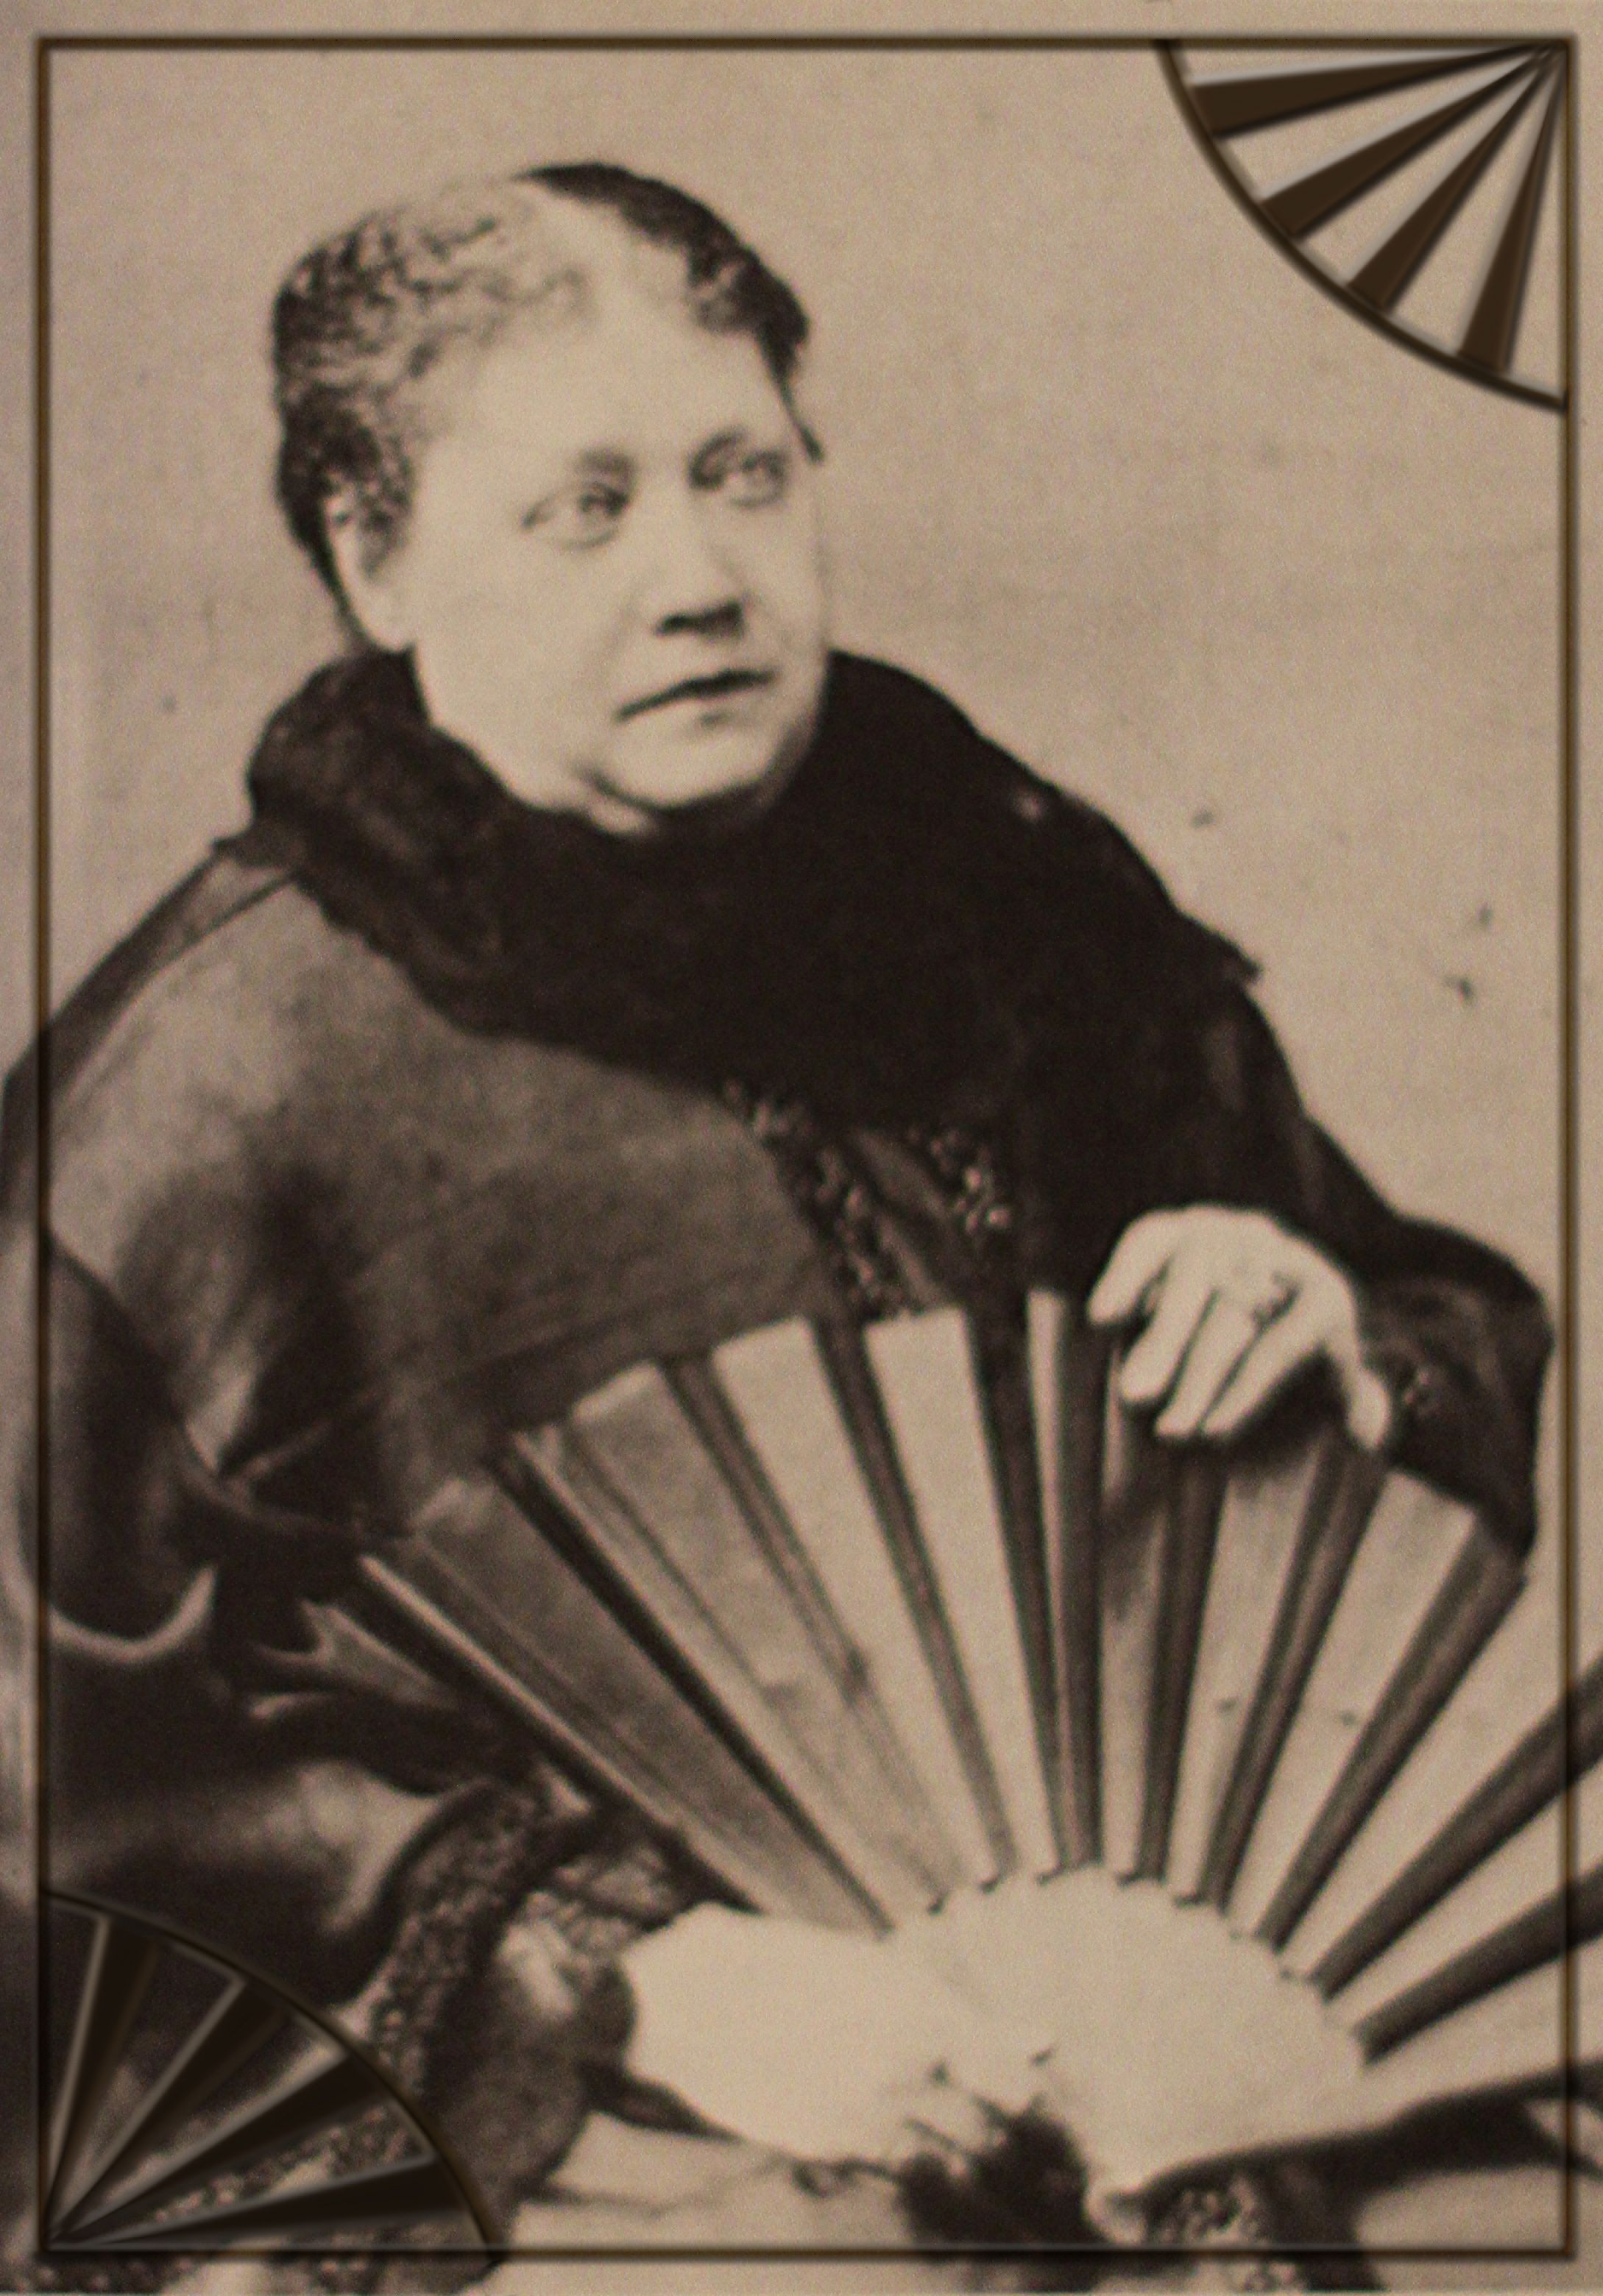 Madame Blavatsky and the Astral Light (Julia Campbell and Catherine Swallow)